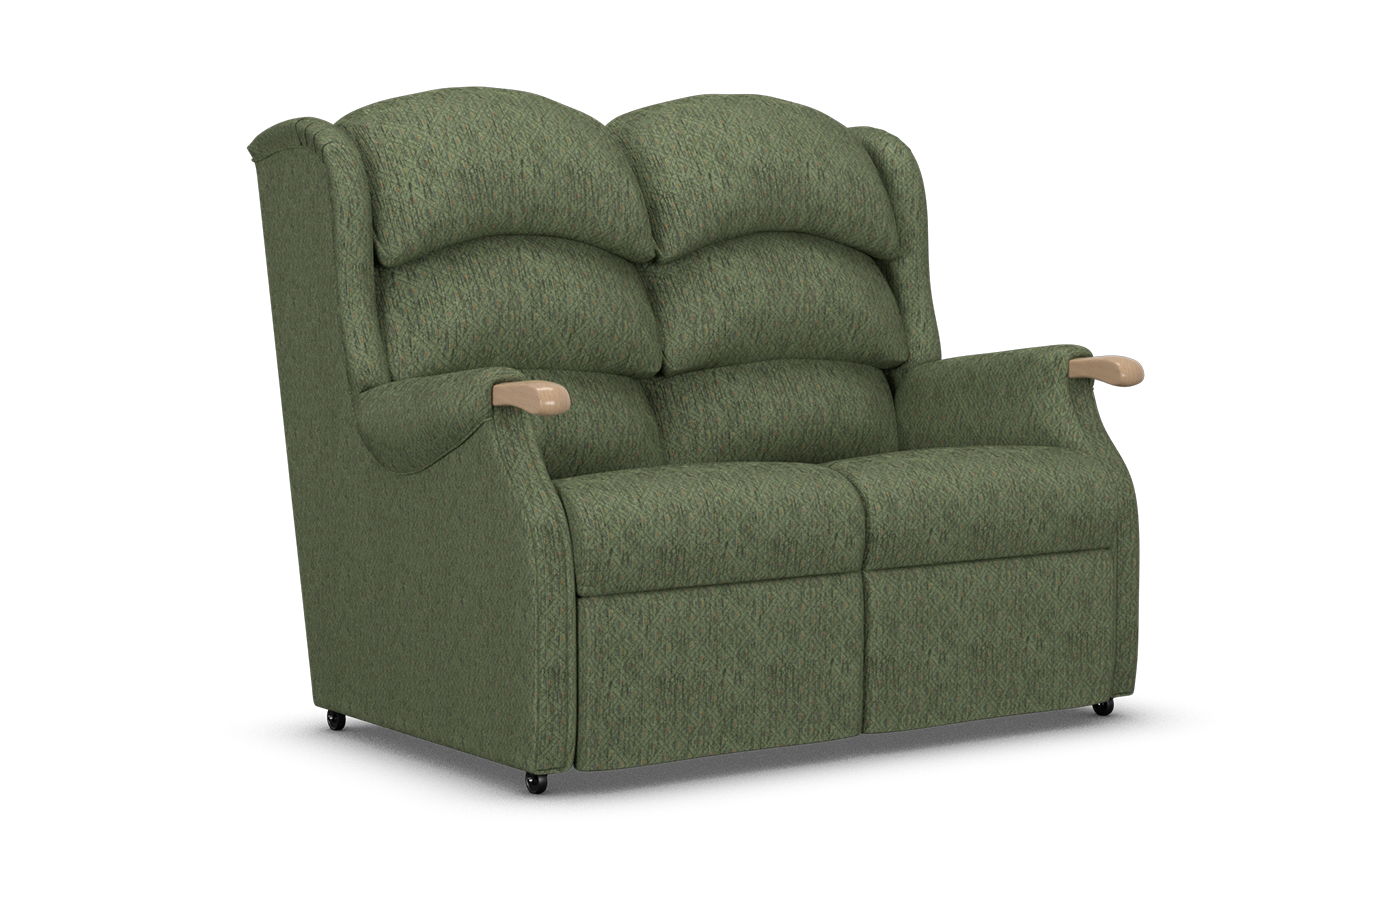 Linton Two Seater Comfort Sofa Available In Fabric Or